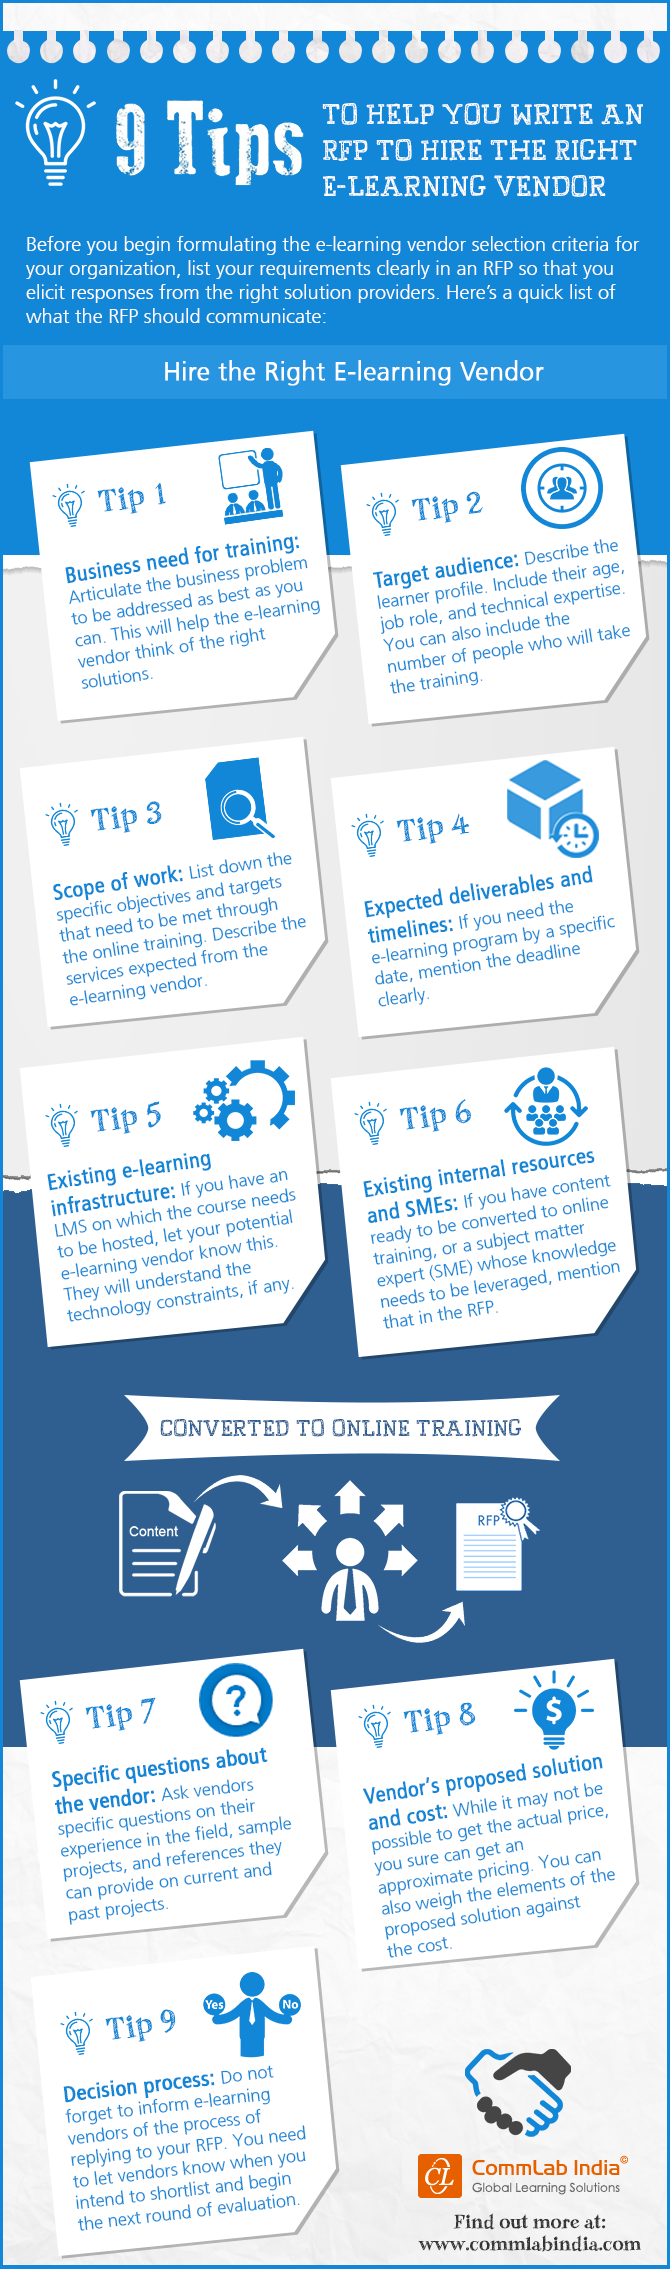 9 Tips that Help You Write an Effective RFP to Hire an E-learning Vendor [Infographic]